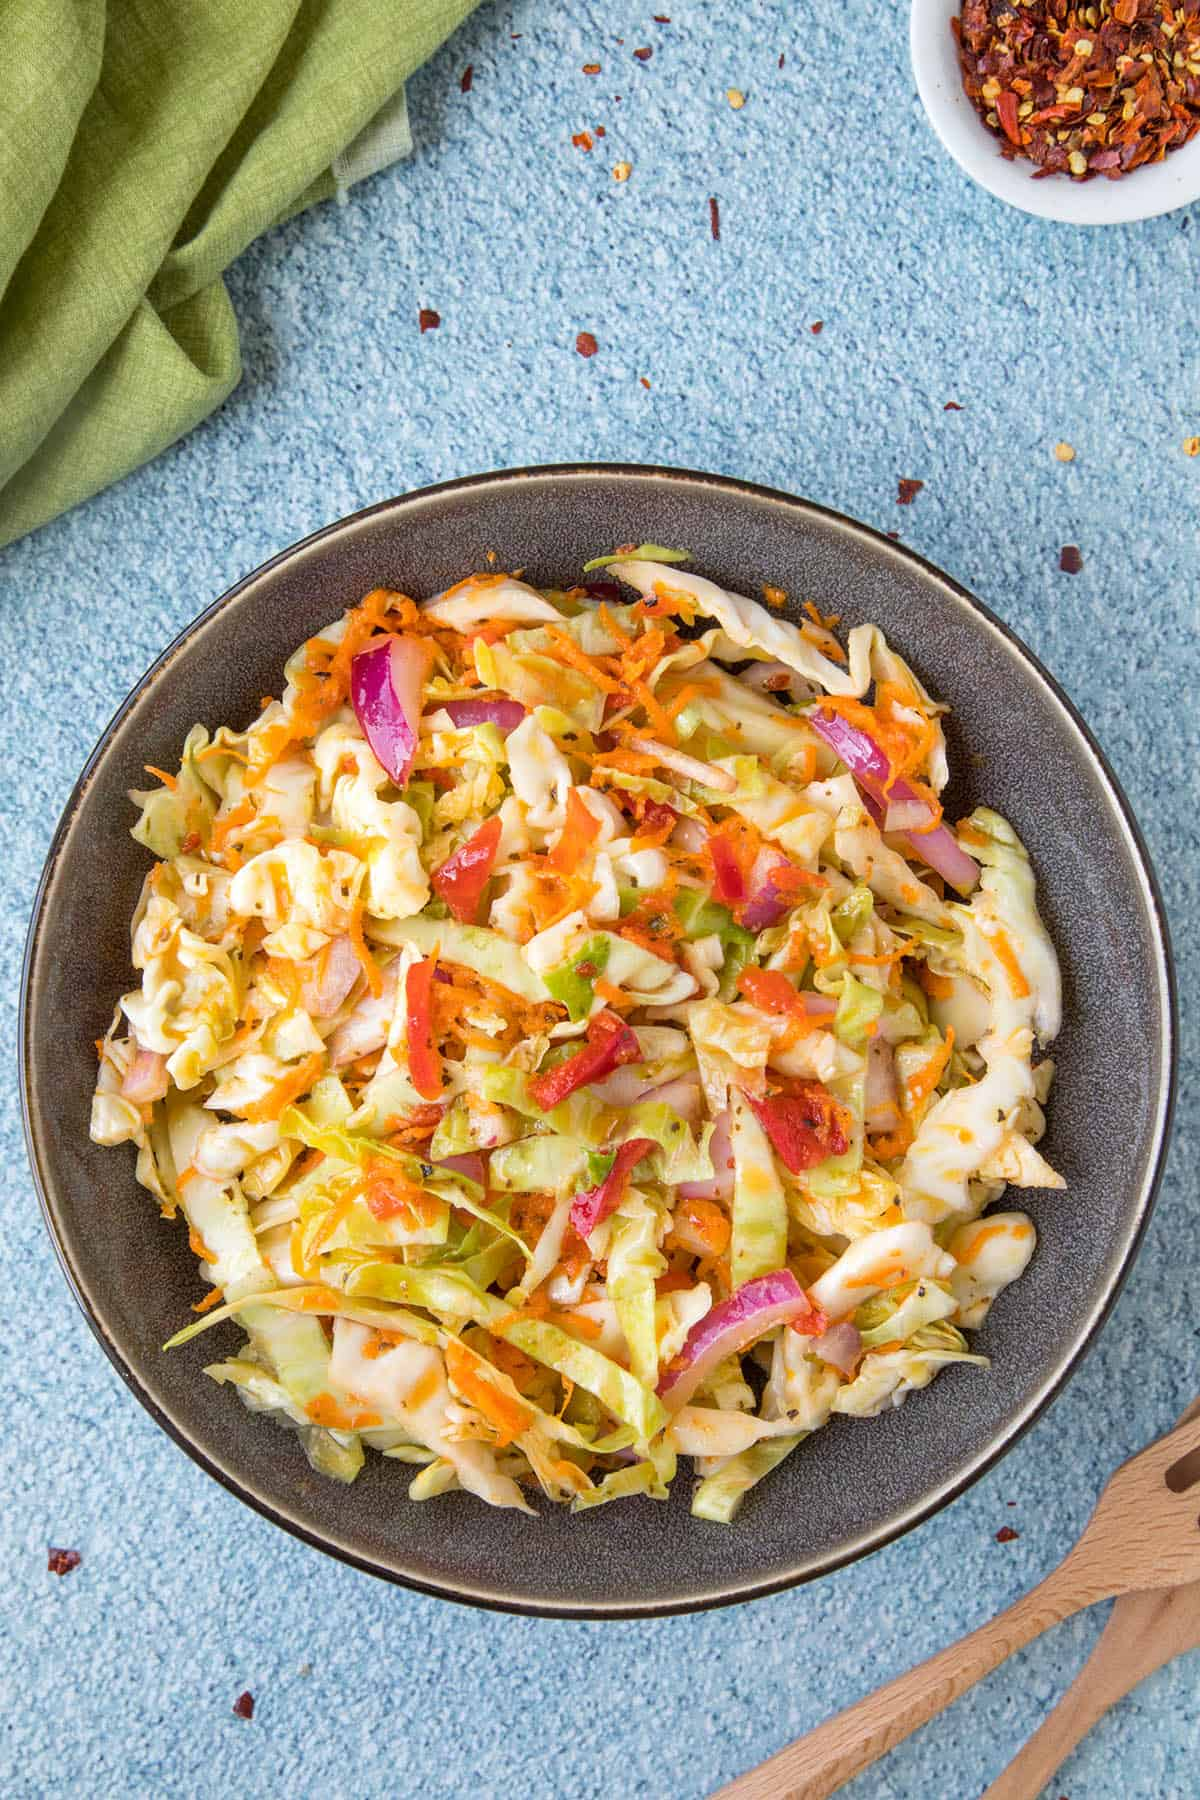 Vinegar Coleslaw, ready to eat